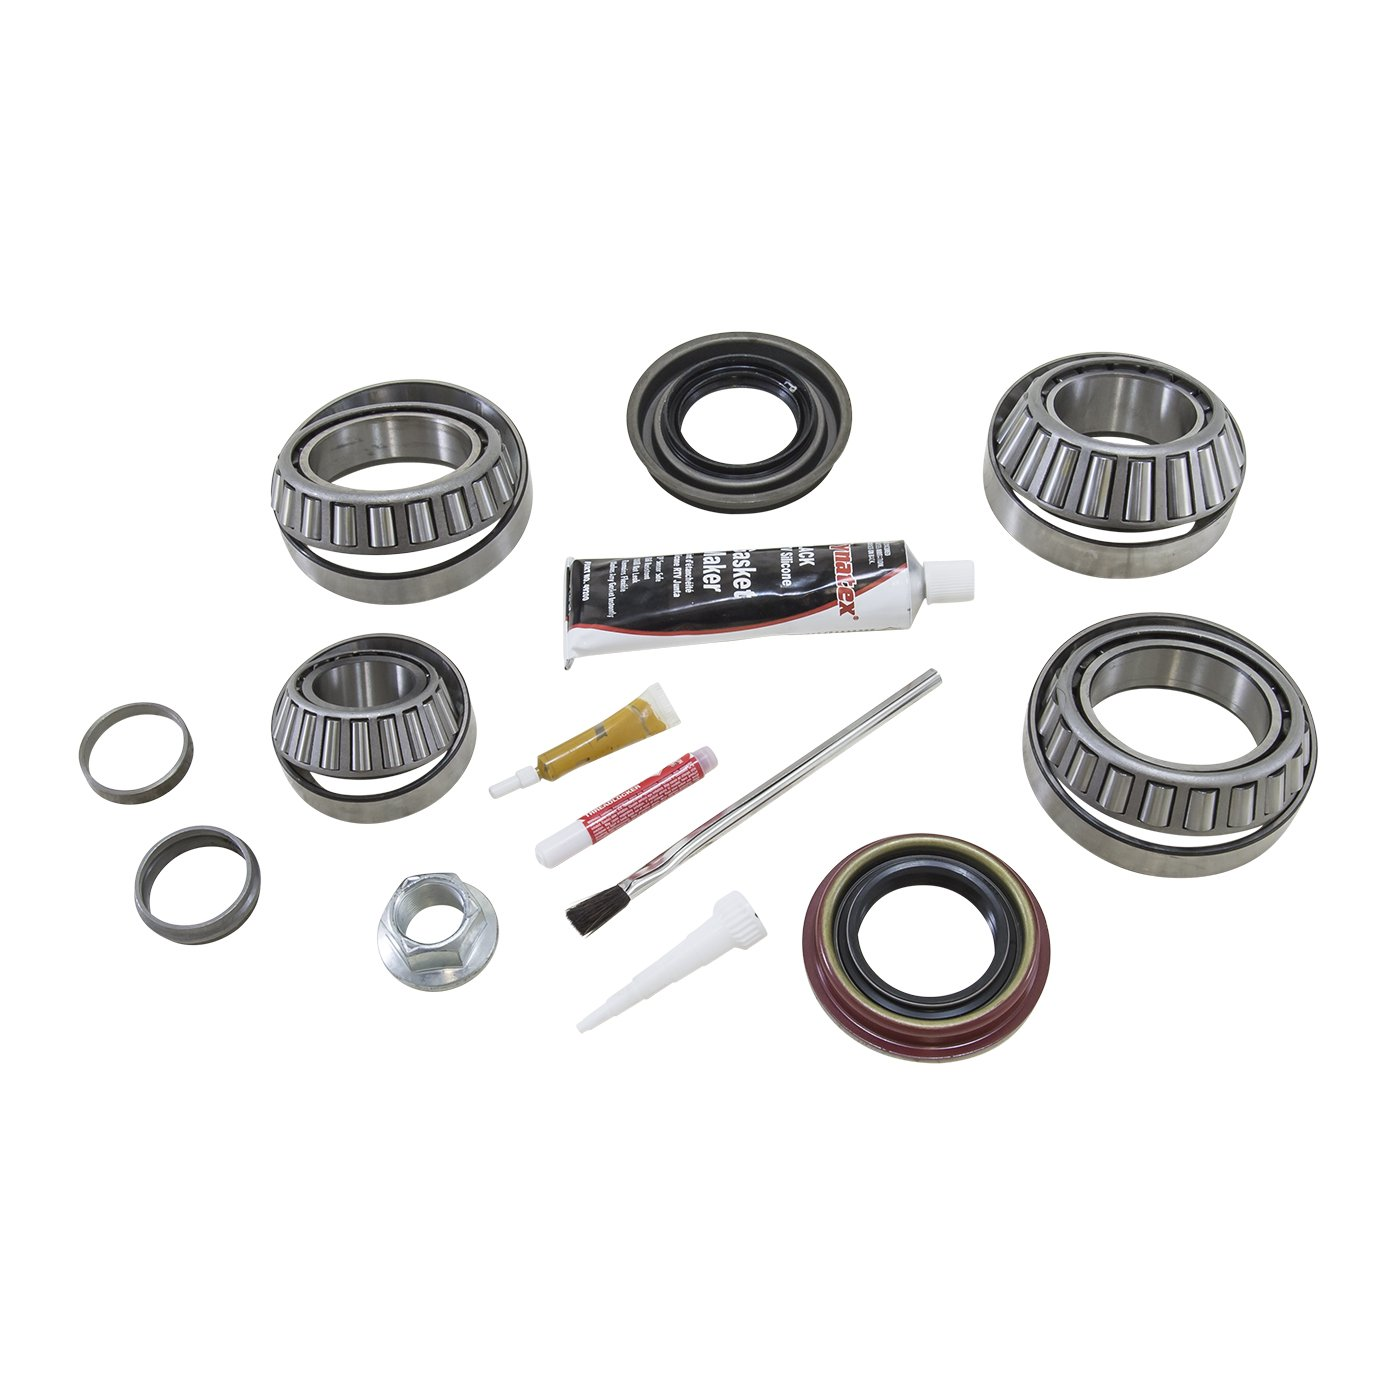 USA Standard Gear (ZBKF9.75-D) Bearing Kit for Ford 9.75 Differential